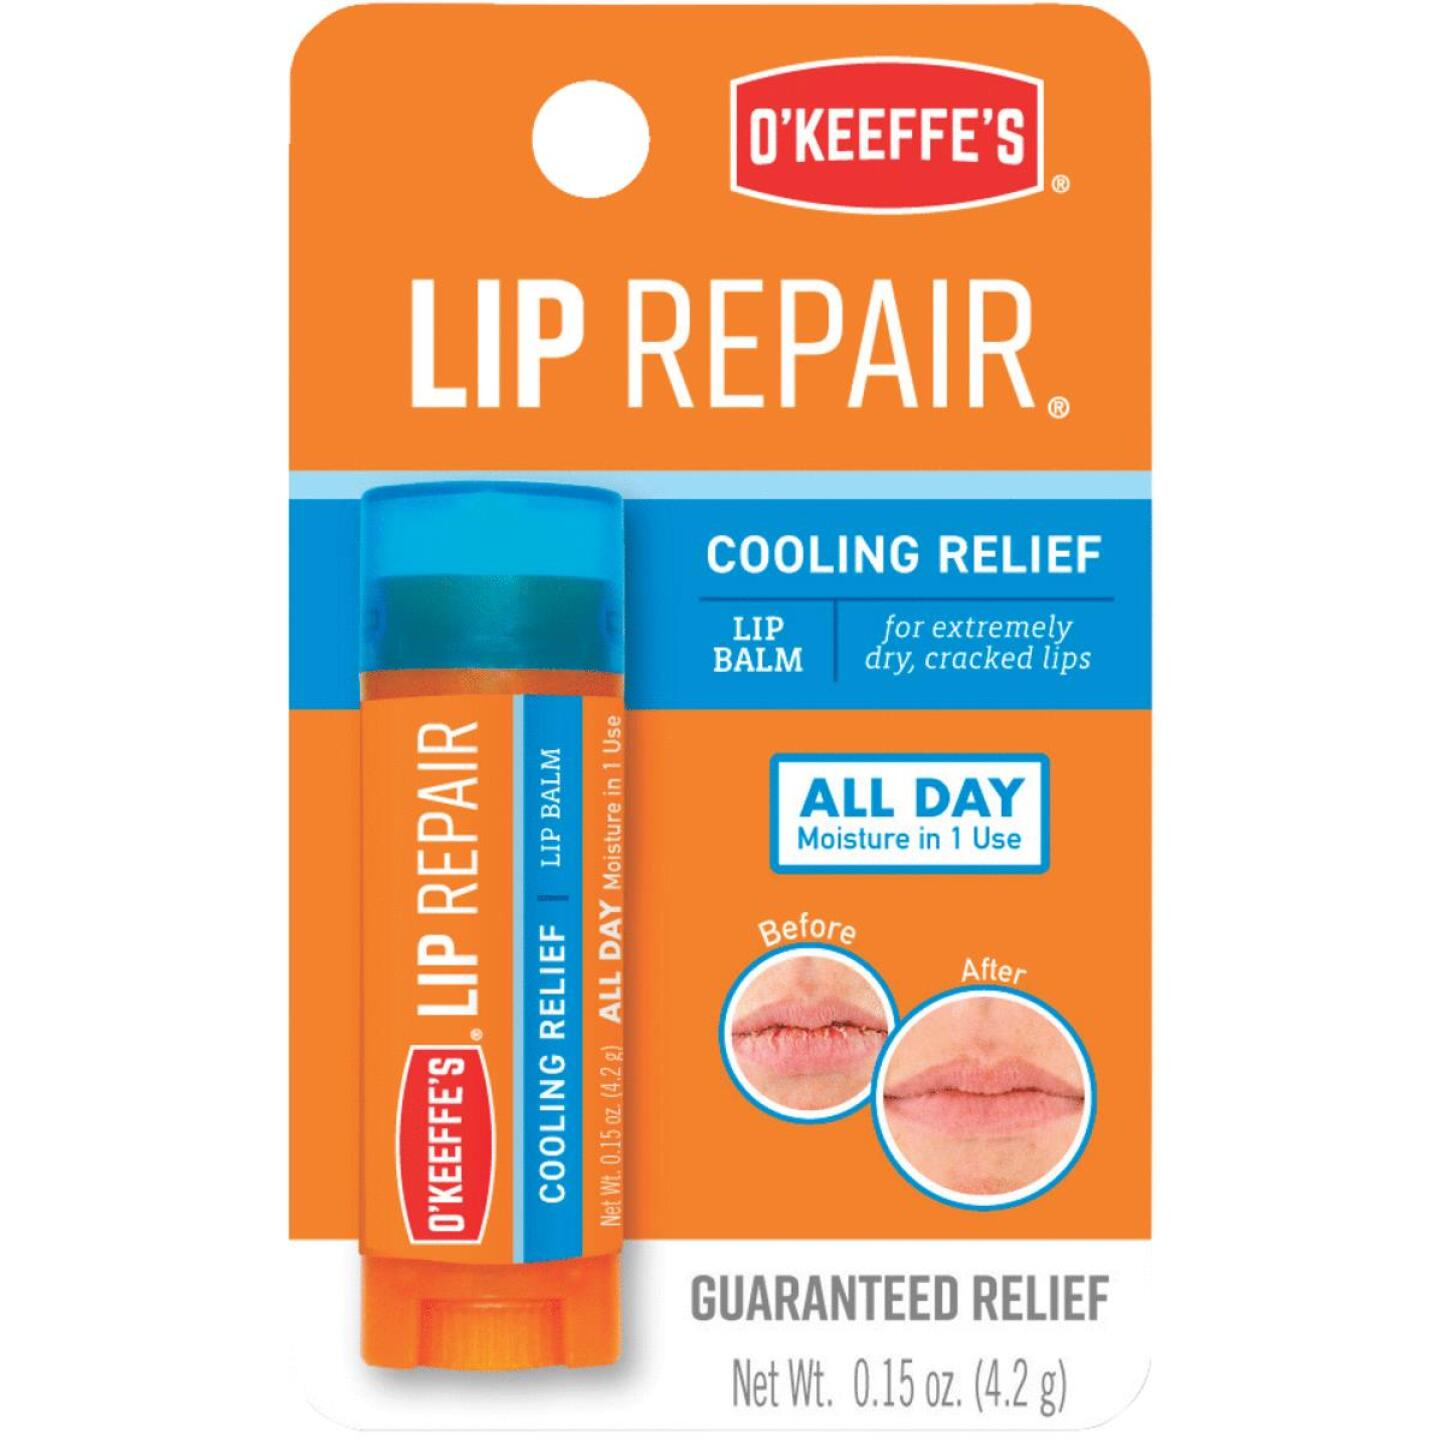 O'Keeffe's Cooling Relief Unflavored Lip Balm, 0.15 Oz. Image 1